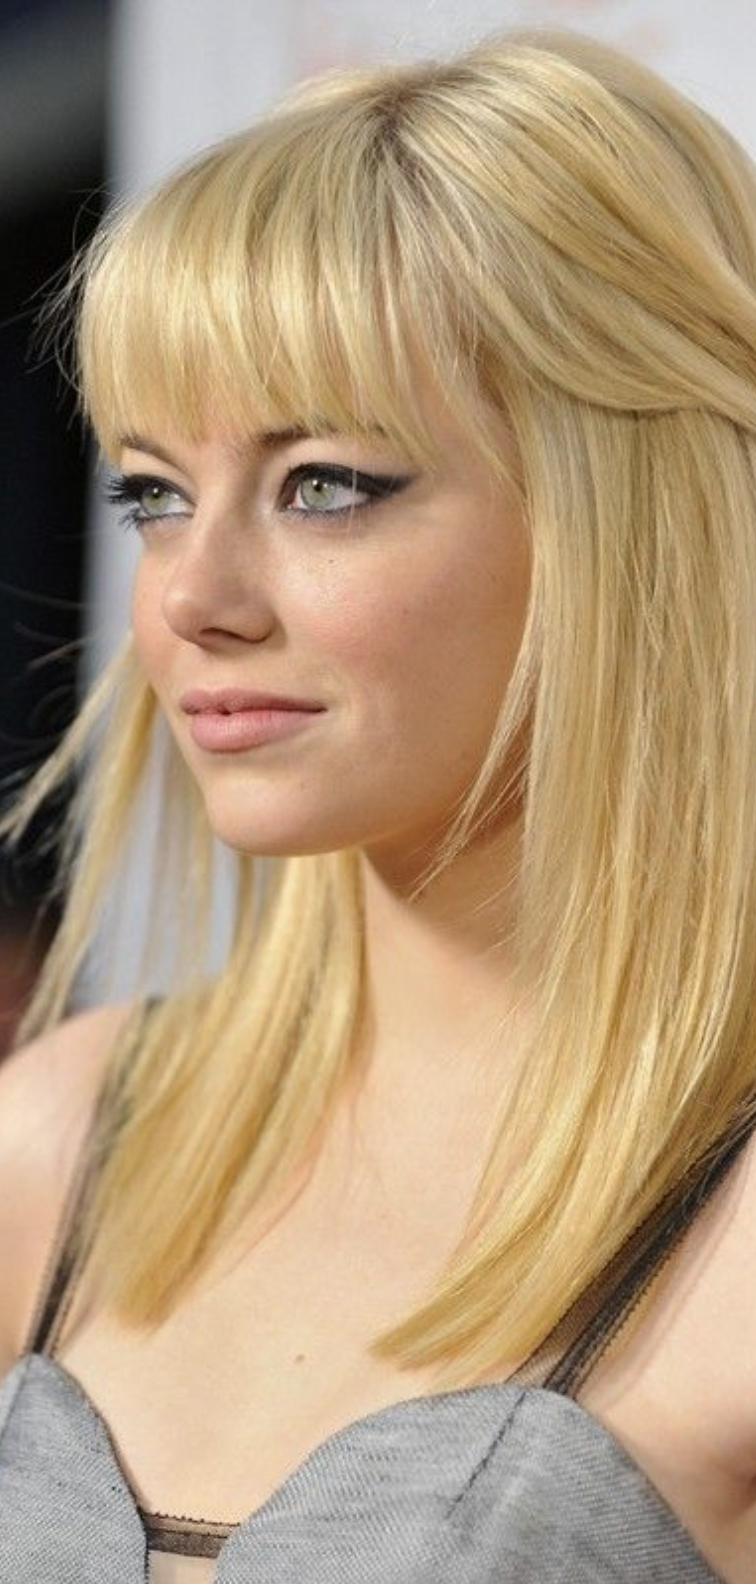 Emma Stone | Emma stone | Pinterest | Emma stone, Stone and Ryan gosling